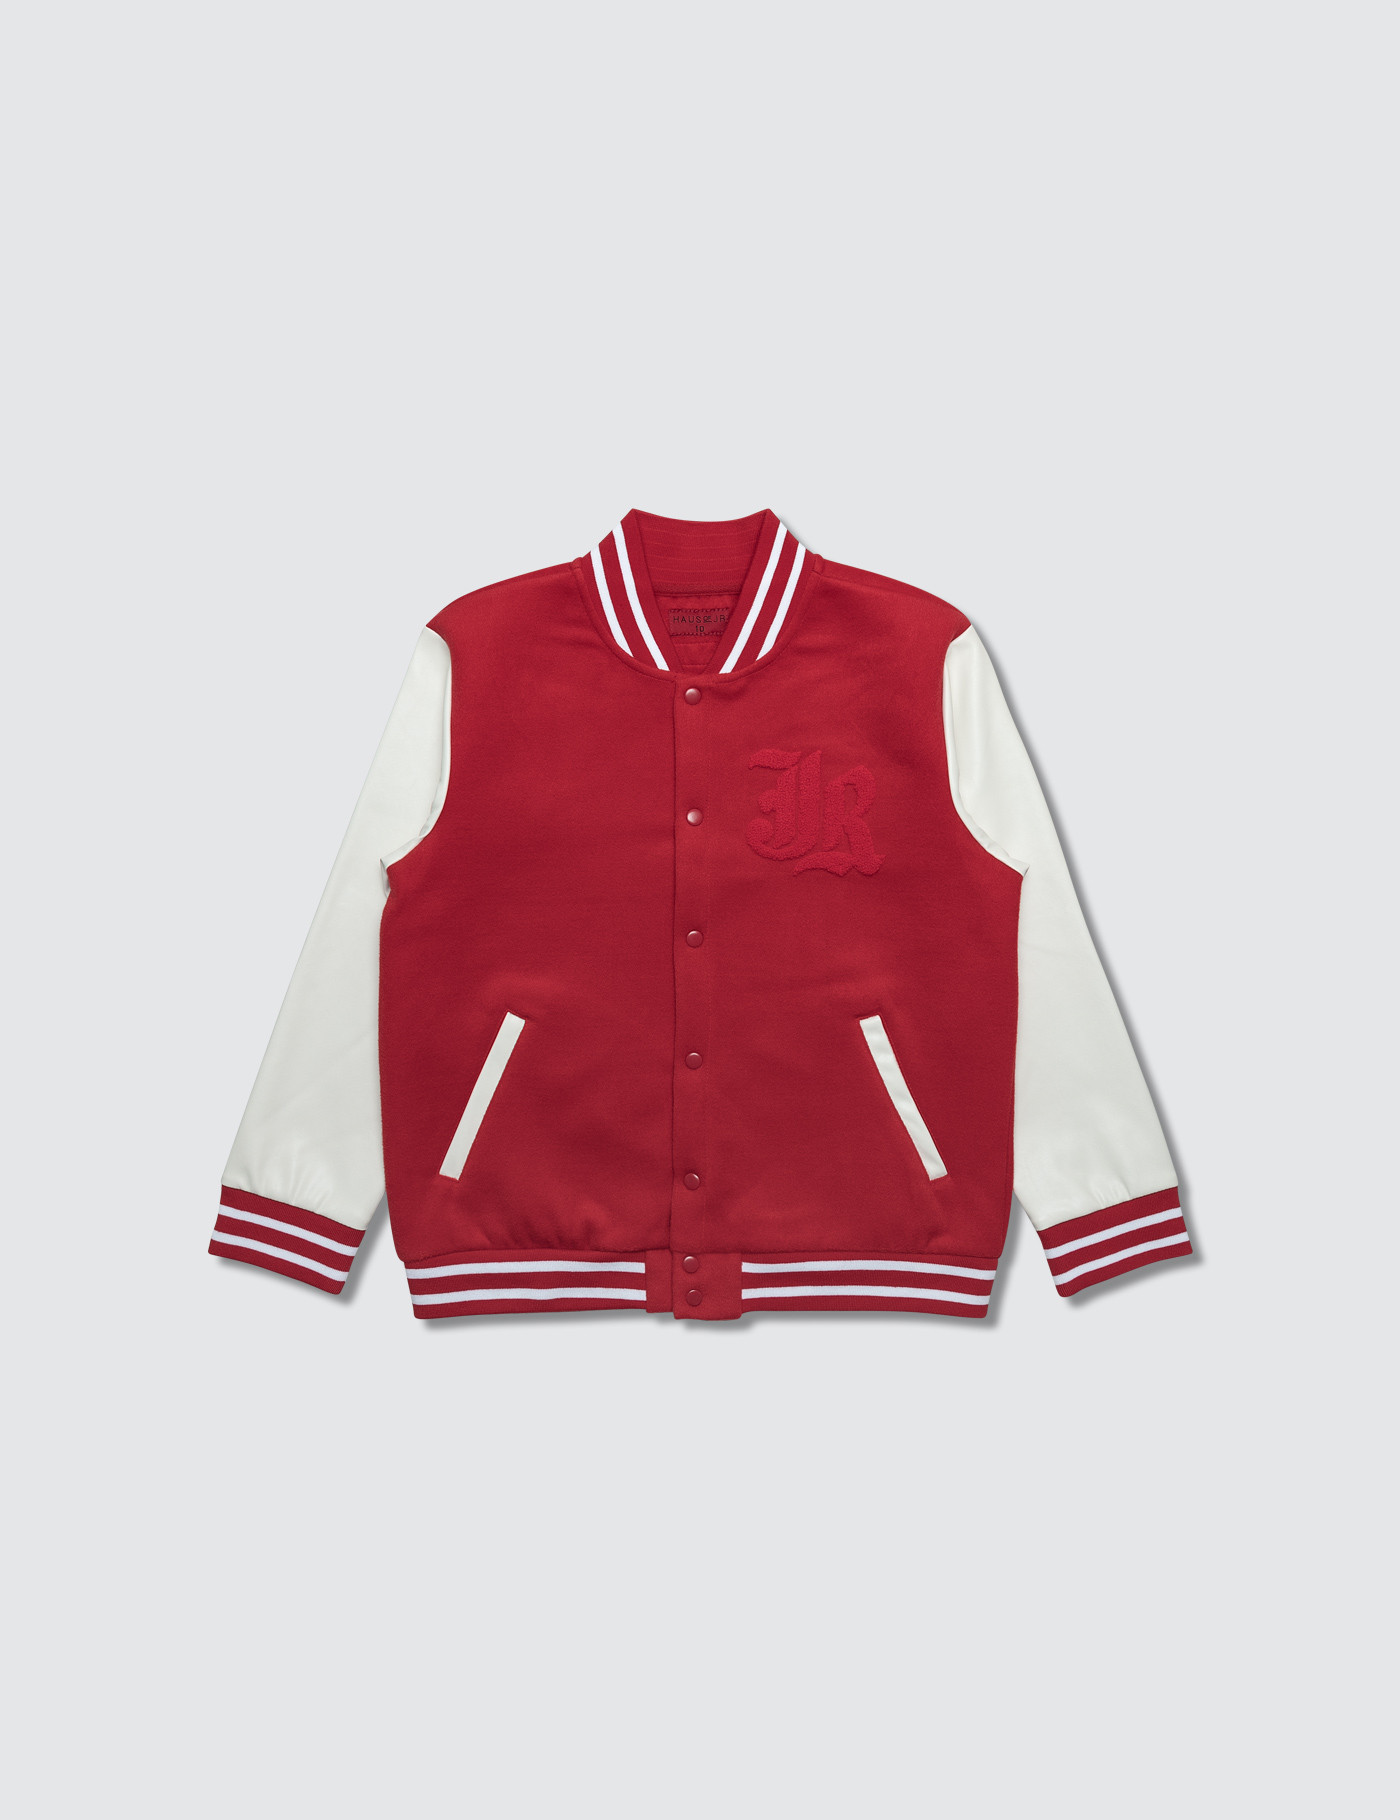 Haus of JR Alec Varsity Jacket